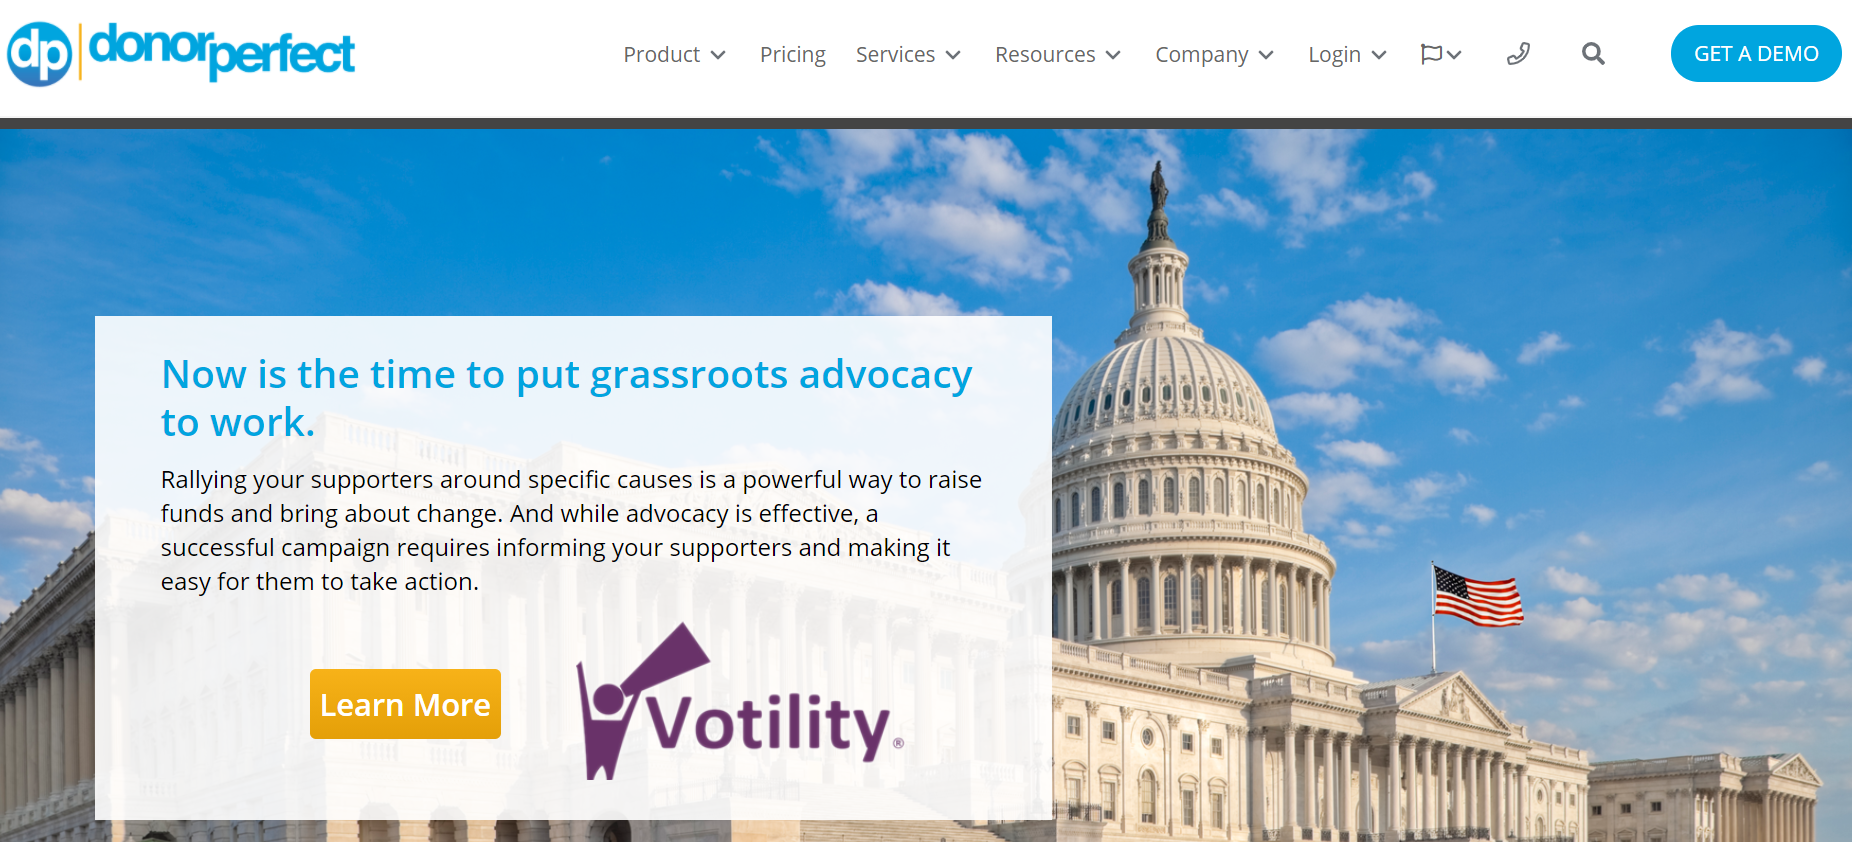 Votility Advocacy Software homepage screenshot